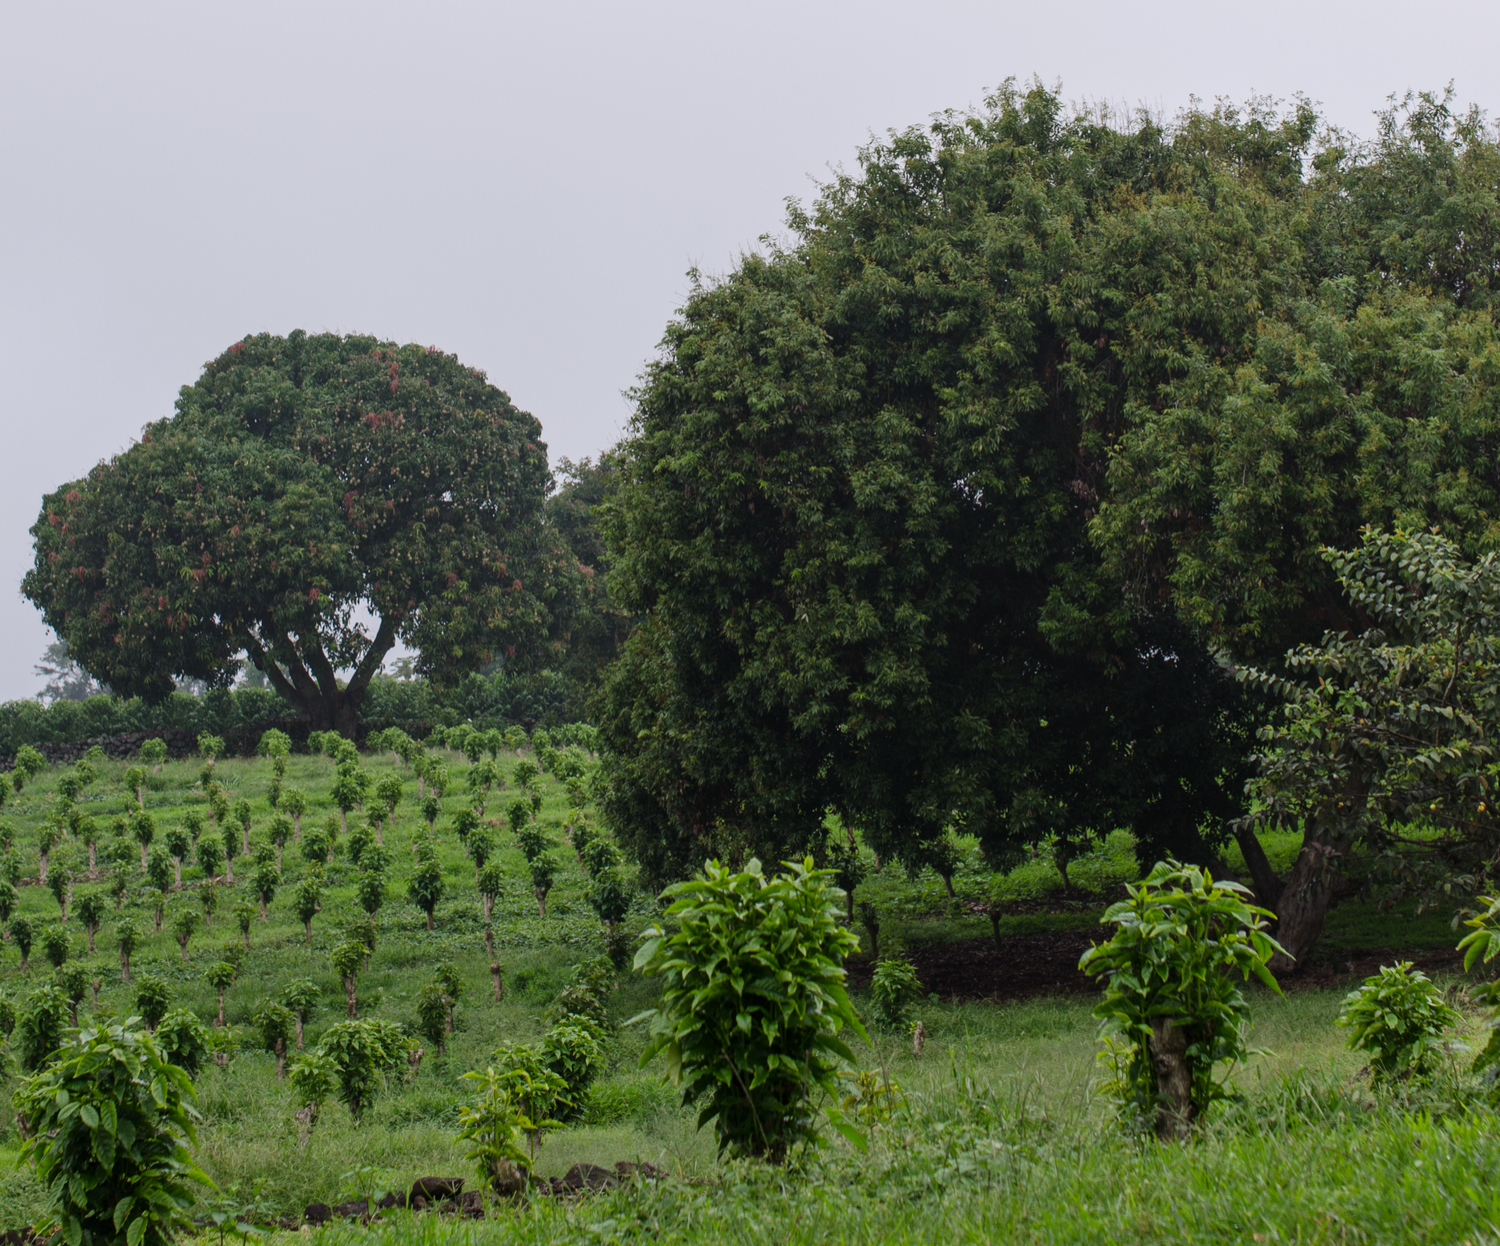 Endless rows of coffee trees.